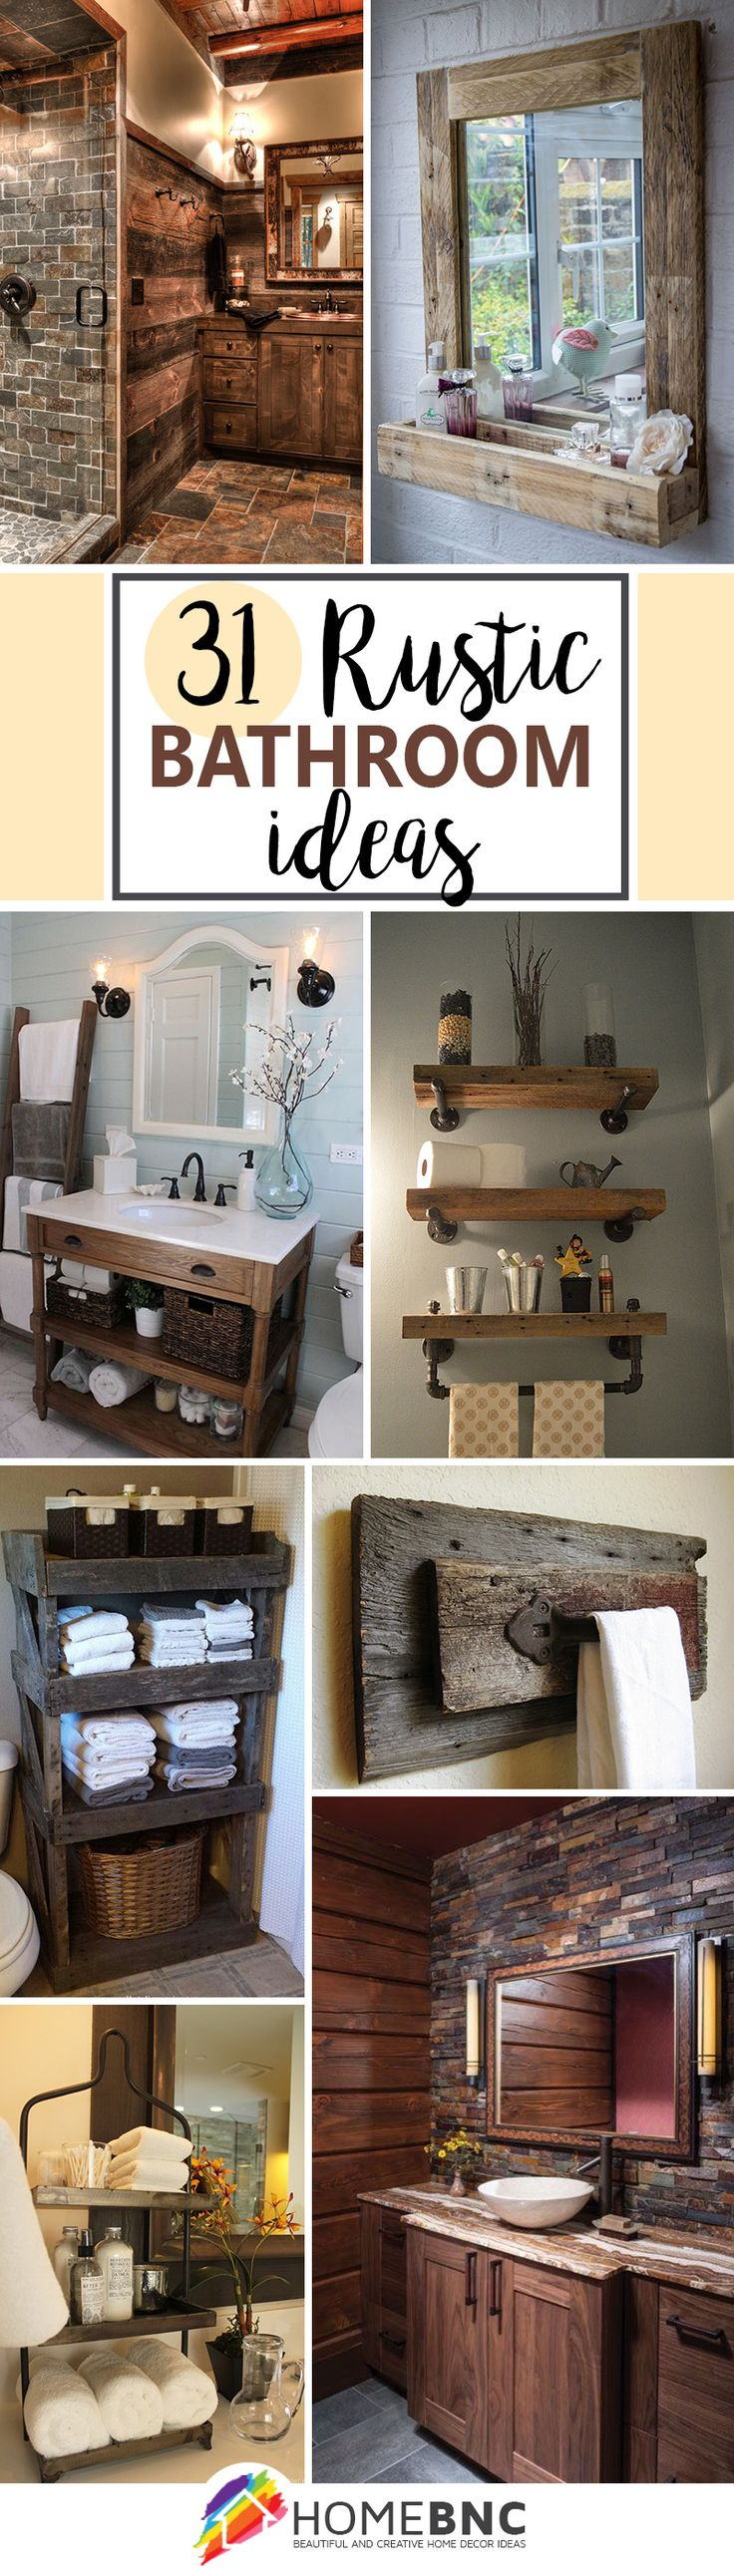 best 25+ rustic decorating ideas ideas only on pinterest | diy